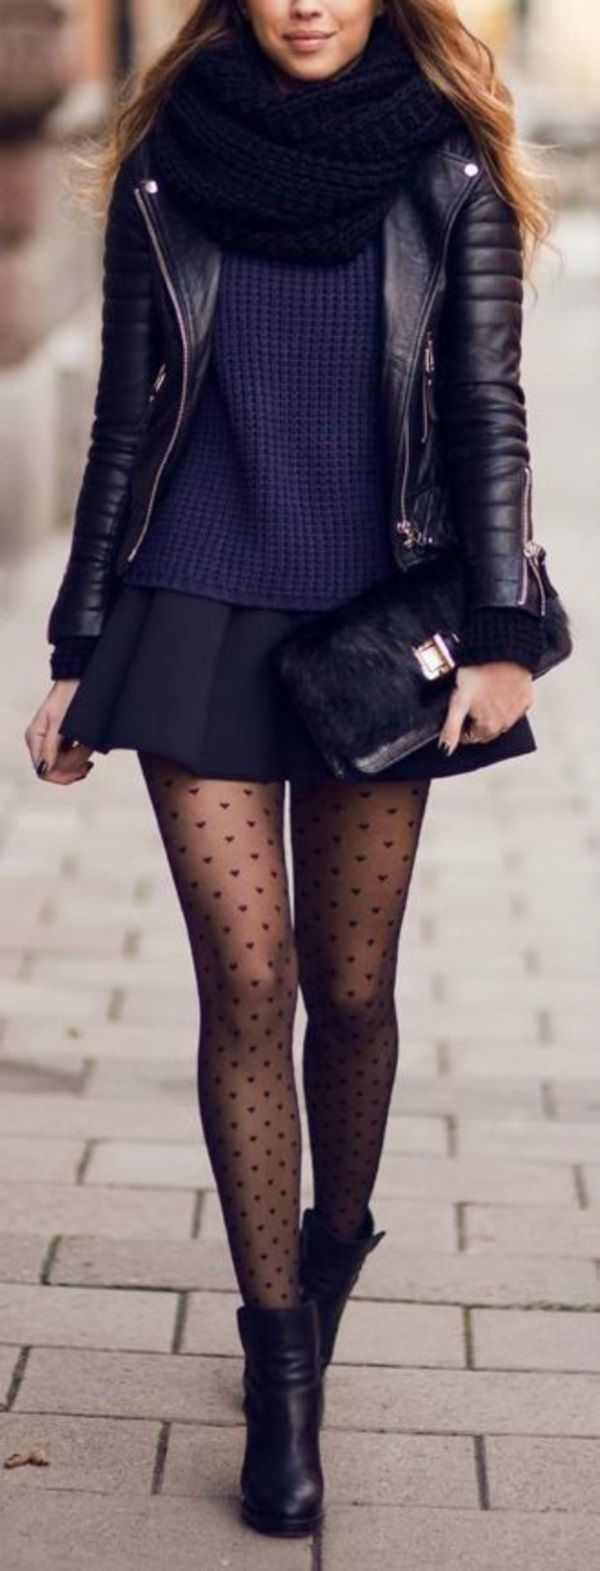 Sexy Winter Skirt Outfit Ideas (11) - if the skirt was a bit longer... like 5 inches longer...